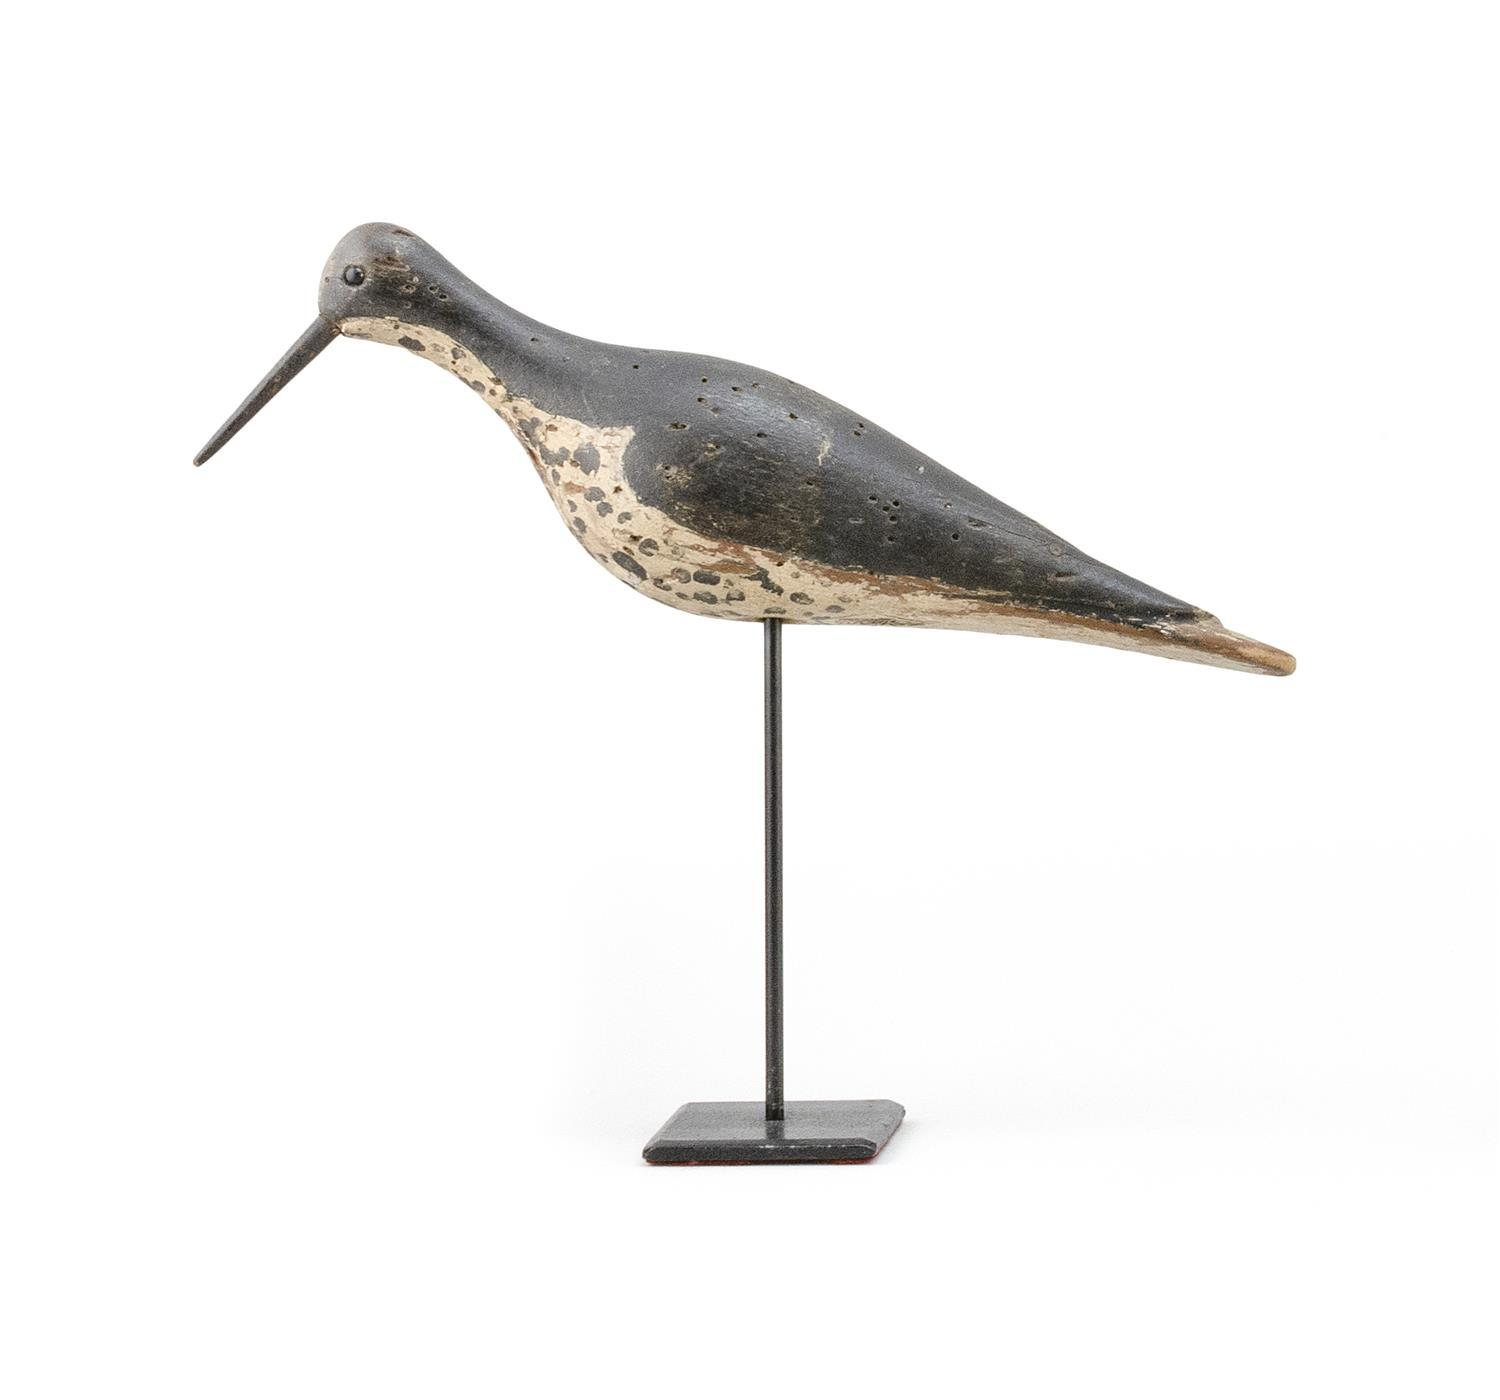 MASSACHUSETTS WILLET DECOY Maker unknown. Glass eyes. Replaced bill. Carved wing detail. Starr Collection stamp on underside. Length...